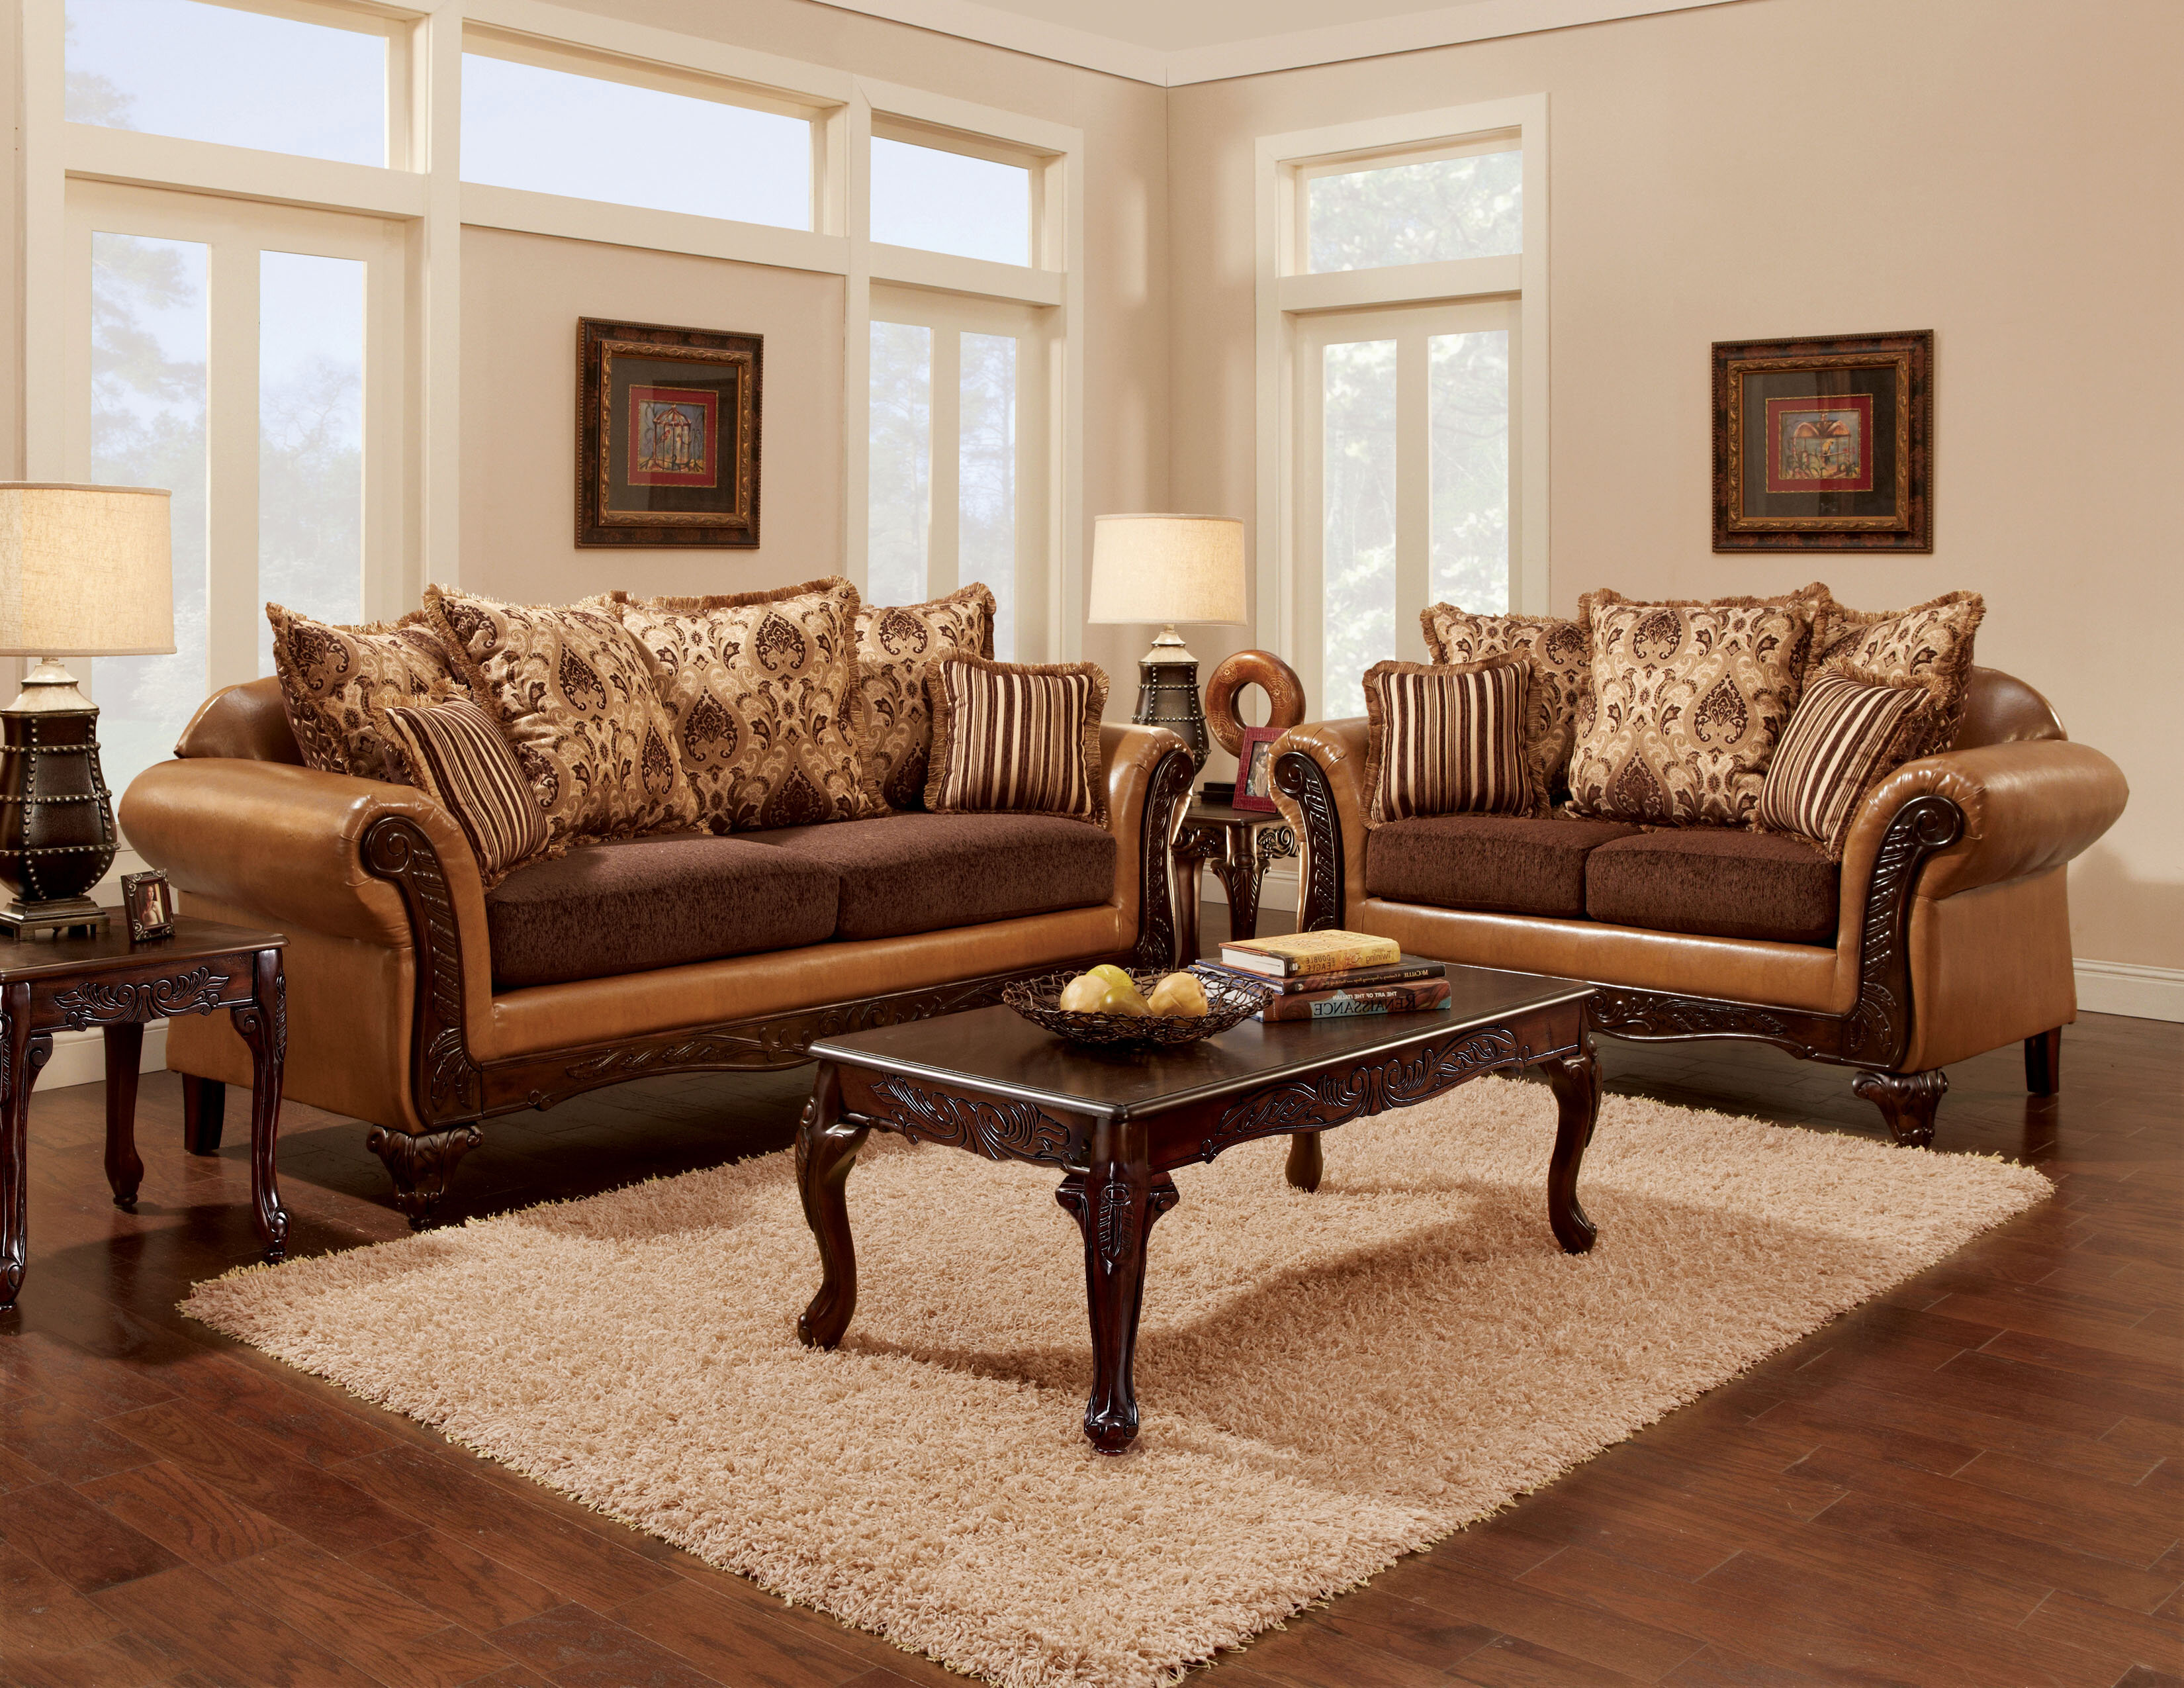 Astoria grand doonans configurable living room set wayfair